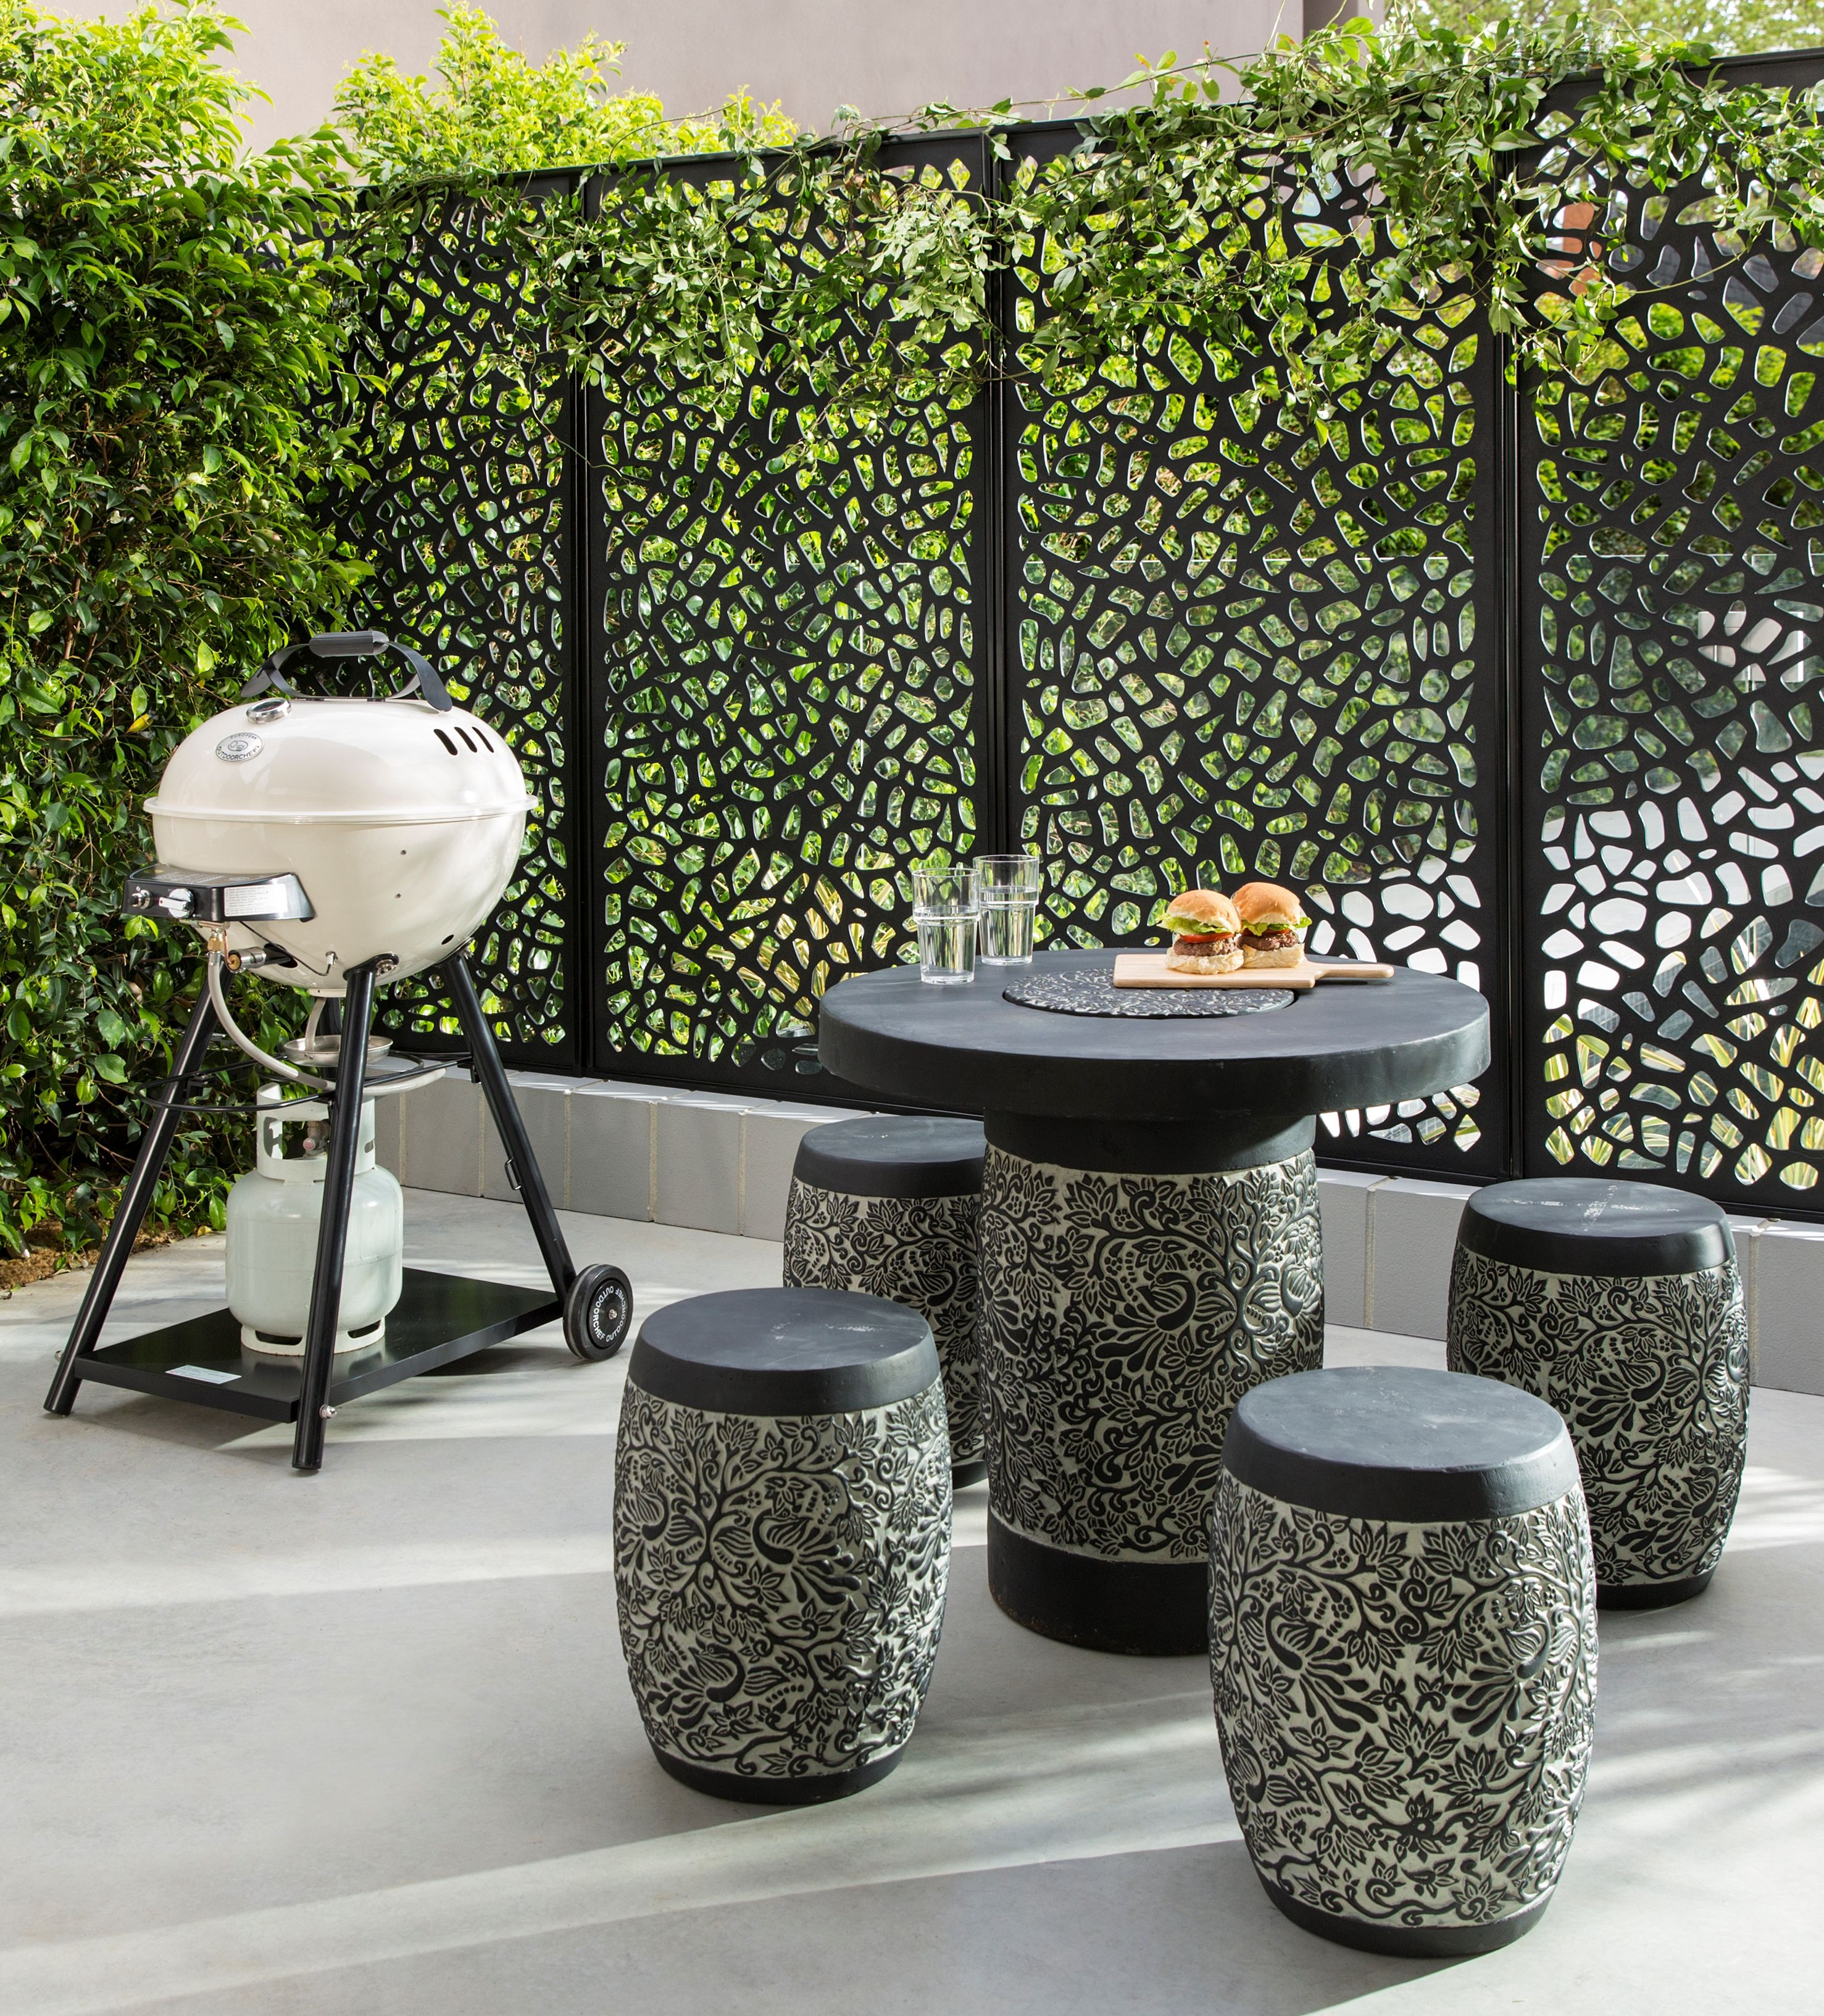 Outdoor Inspiration Package At Bunnings